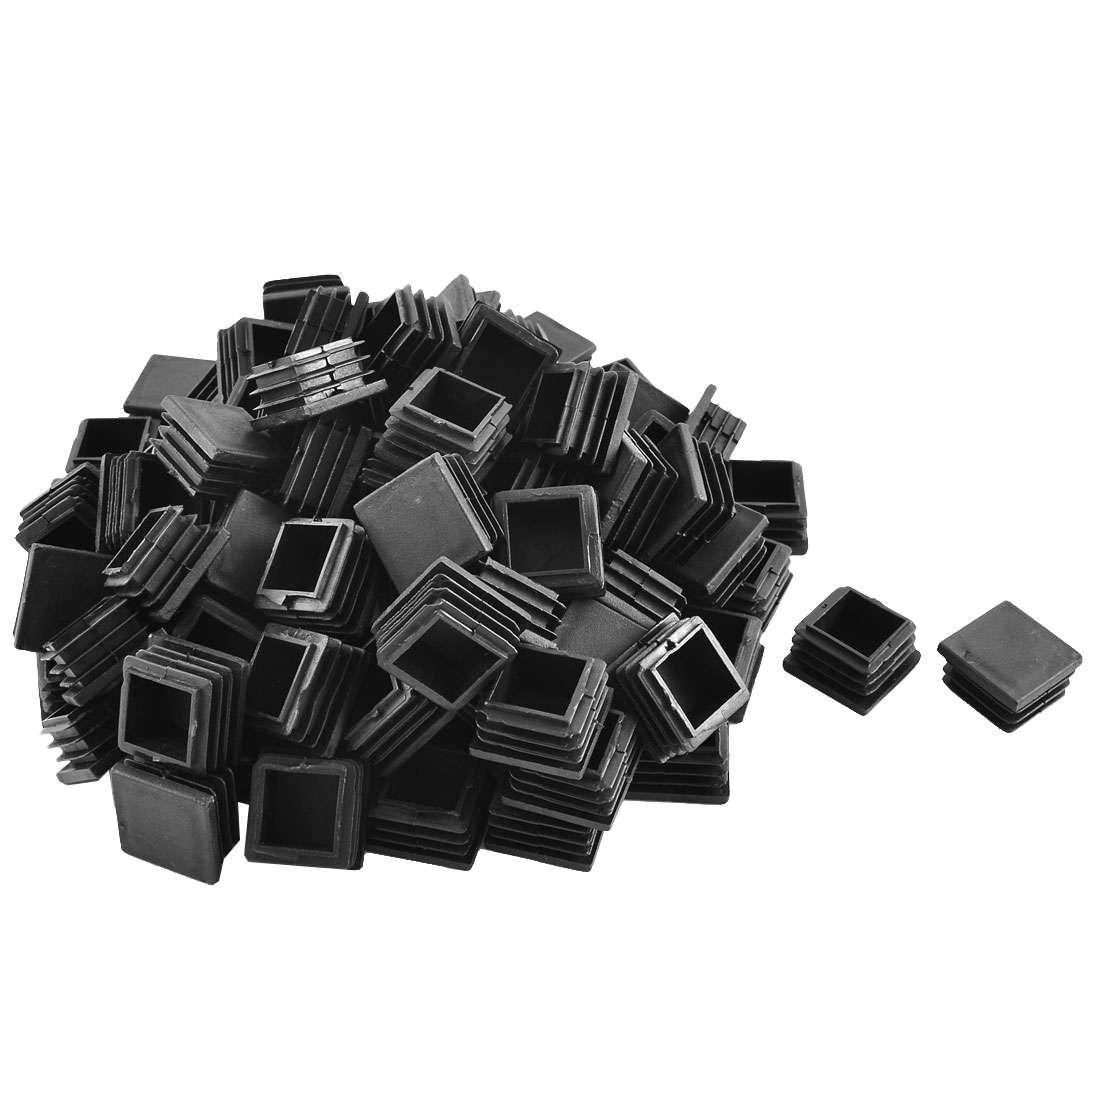 Plastic Square Tube Inserts End Blanking Caps Black 30mm x 30mm 100 Pcs